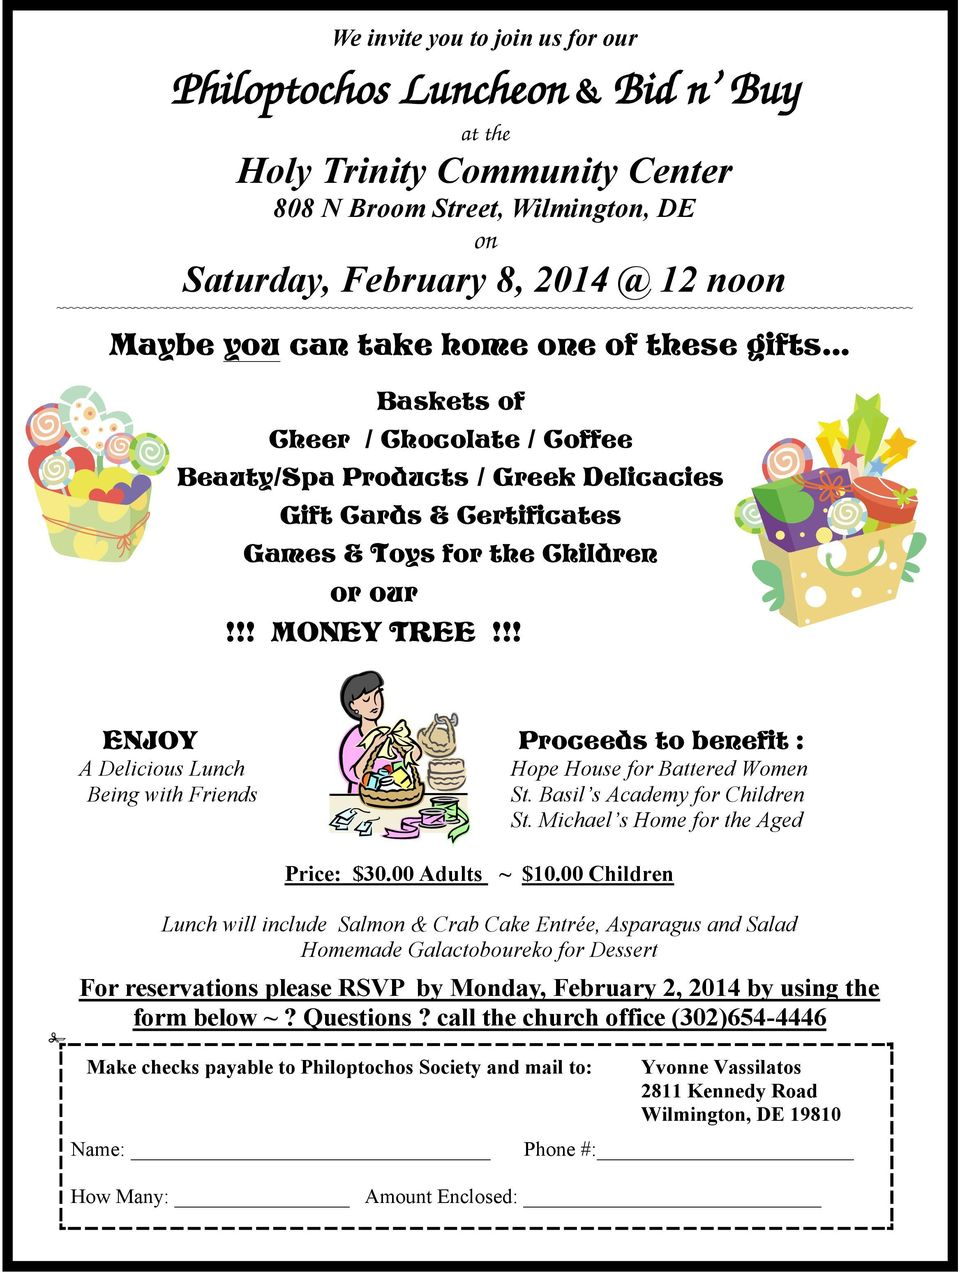 .. Baskets of Cheer / Chocolate / Coffee Beauty/Spa Products / Greek Delicacies Gift Cards & Certificates Games & Toys for the Children or our!!! MONEY TREE!